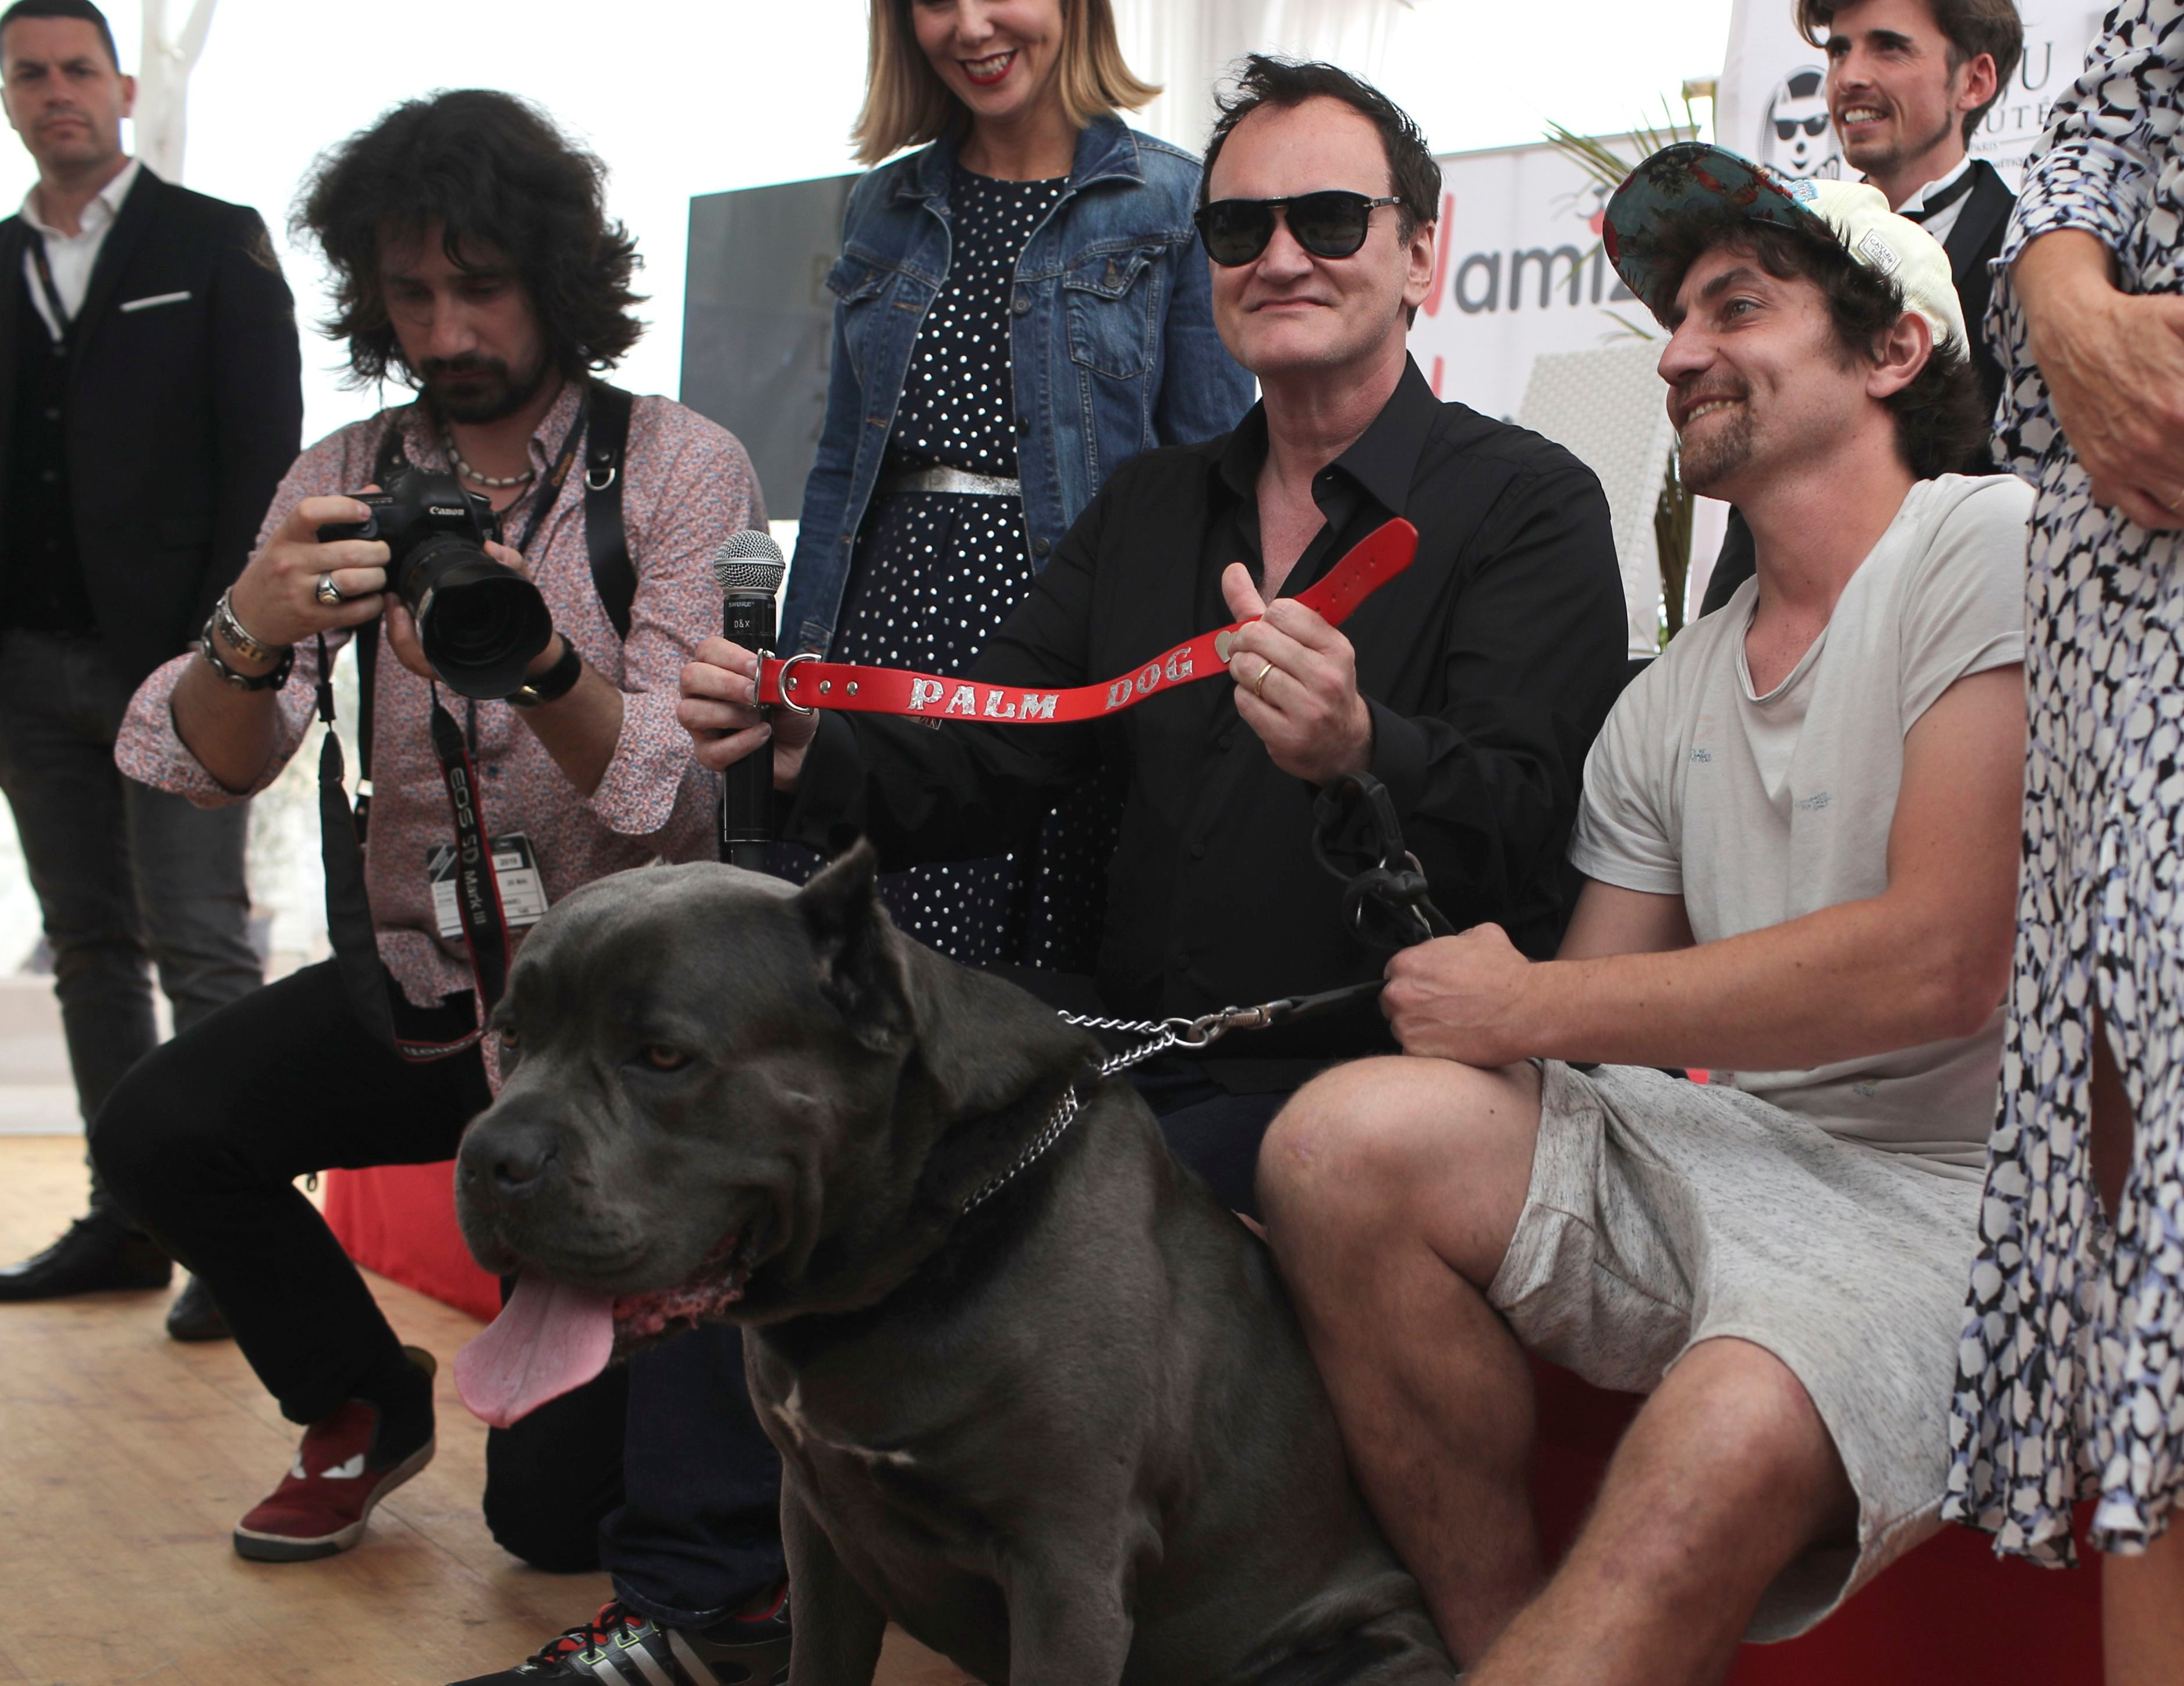 Quentin Tarantino's 'Hollywood' Wins First Cannes Honor: A Palm Dog for Pitbull Star Brandy